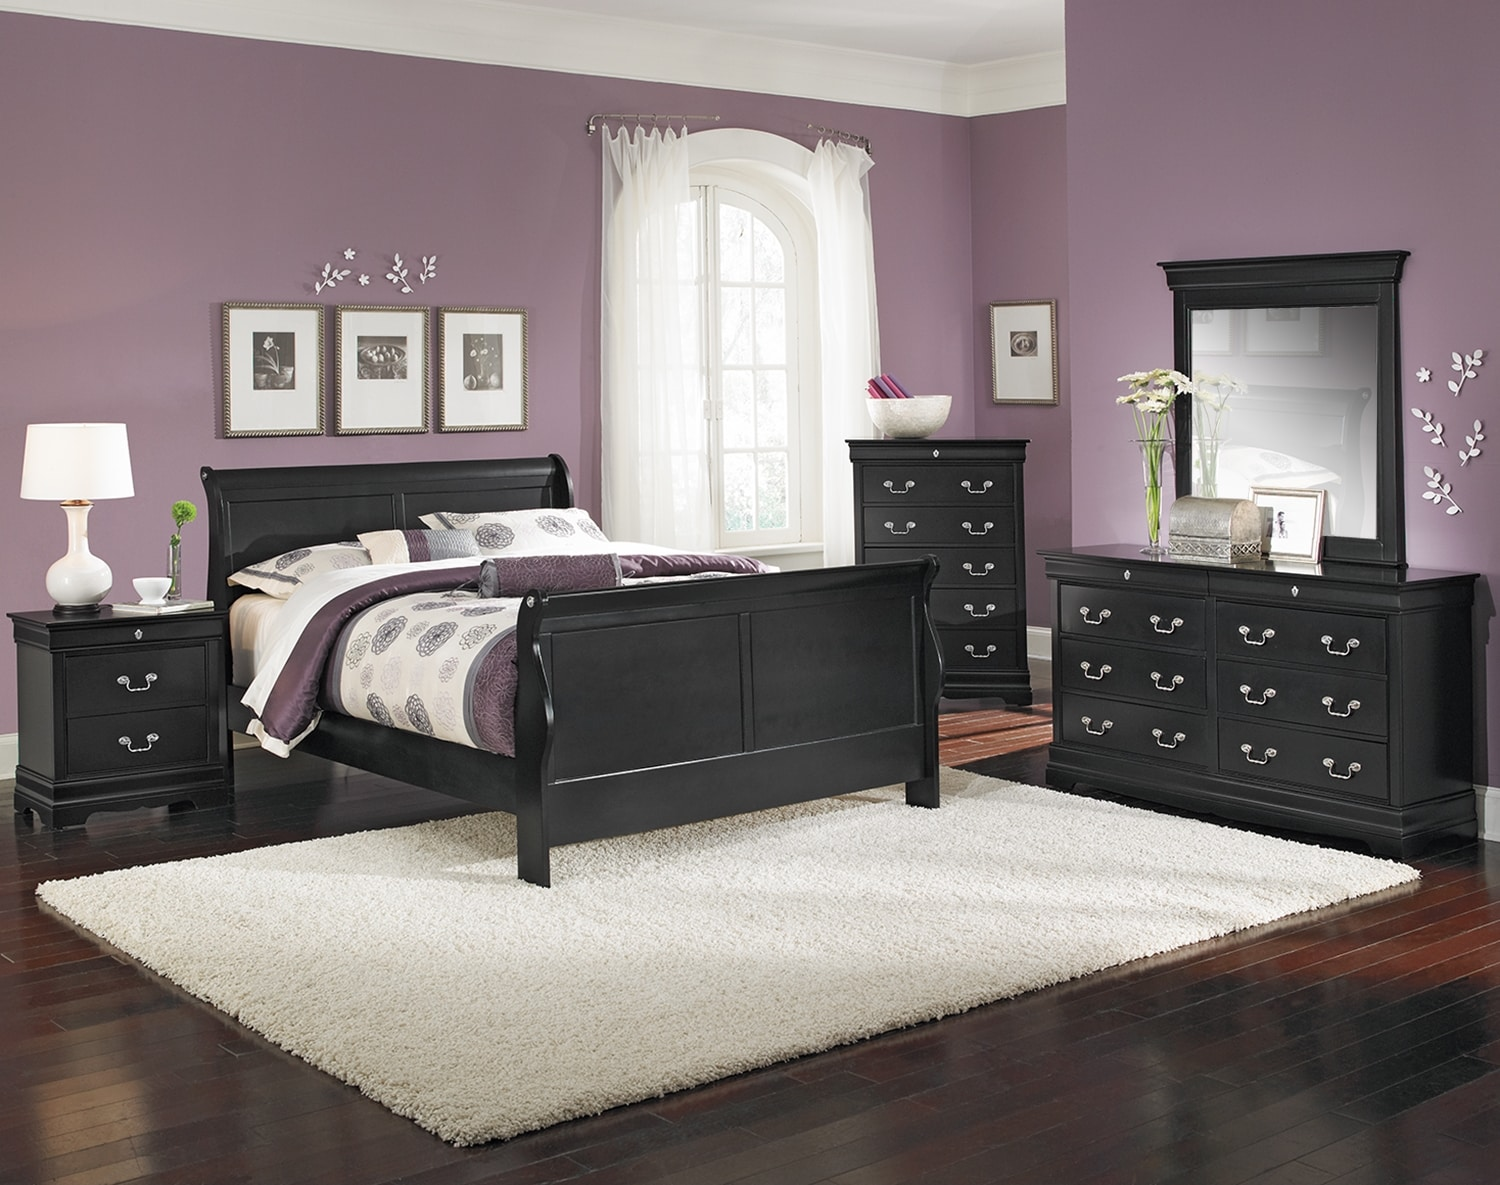 Factory outlet home furniture american signature furniture Home furnishings factory outlet